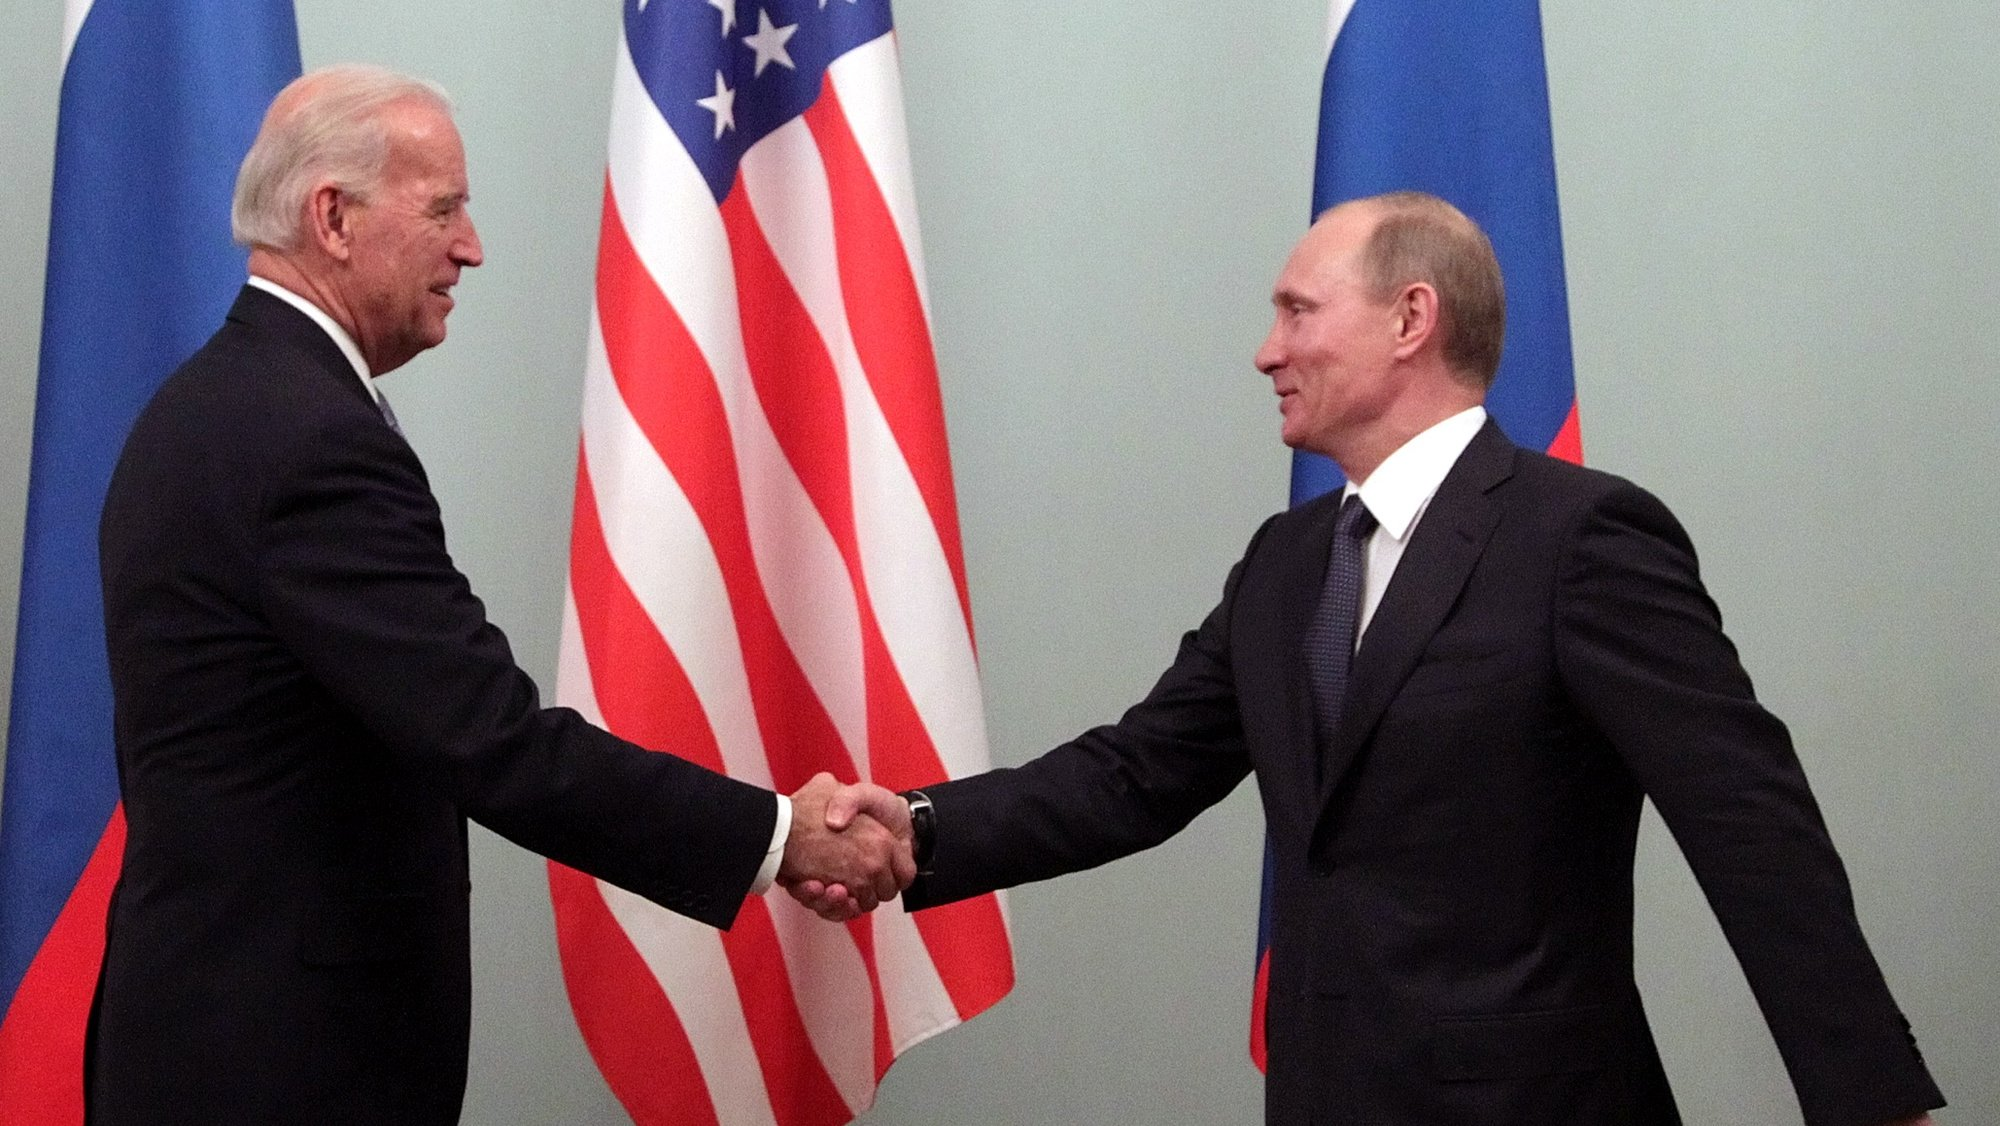 epa08884610 Then US Vice President Joe Biden (L) shakes hands with then Russian Prime Minister Vladimir Putin during their meeting in Moscow, Russia, 10 March 2011 (reissued 15 December 2020). Russian President Vladimir Putin congratulated Joe Biden for his victory in the US presidential election in a telegram published on the Kremlin's website on 15 December 2020.  EPA/MAXIM SHIPENKOV